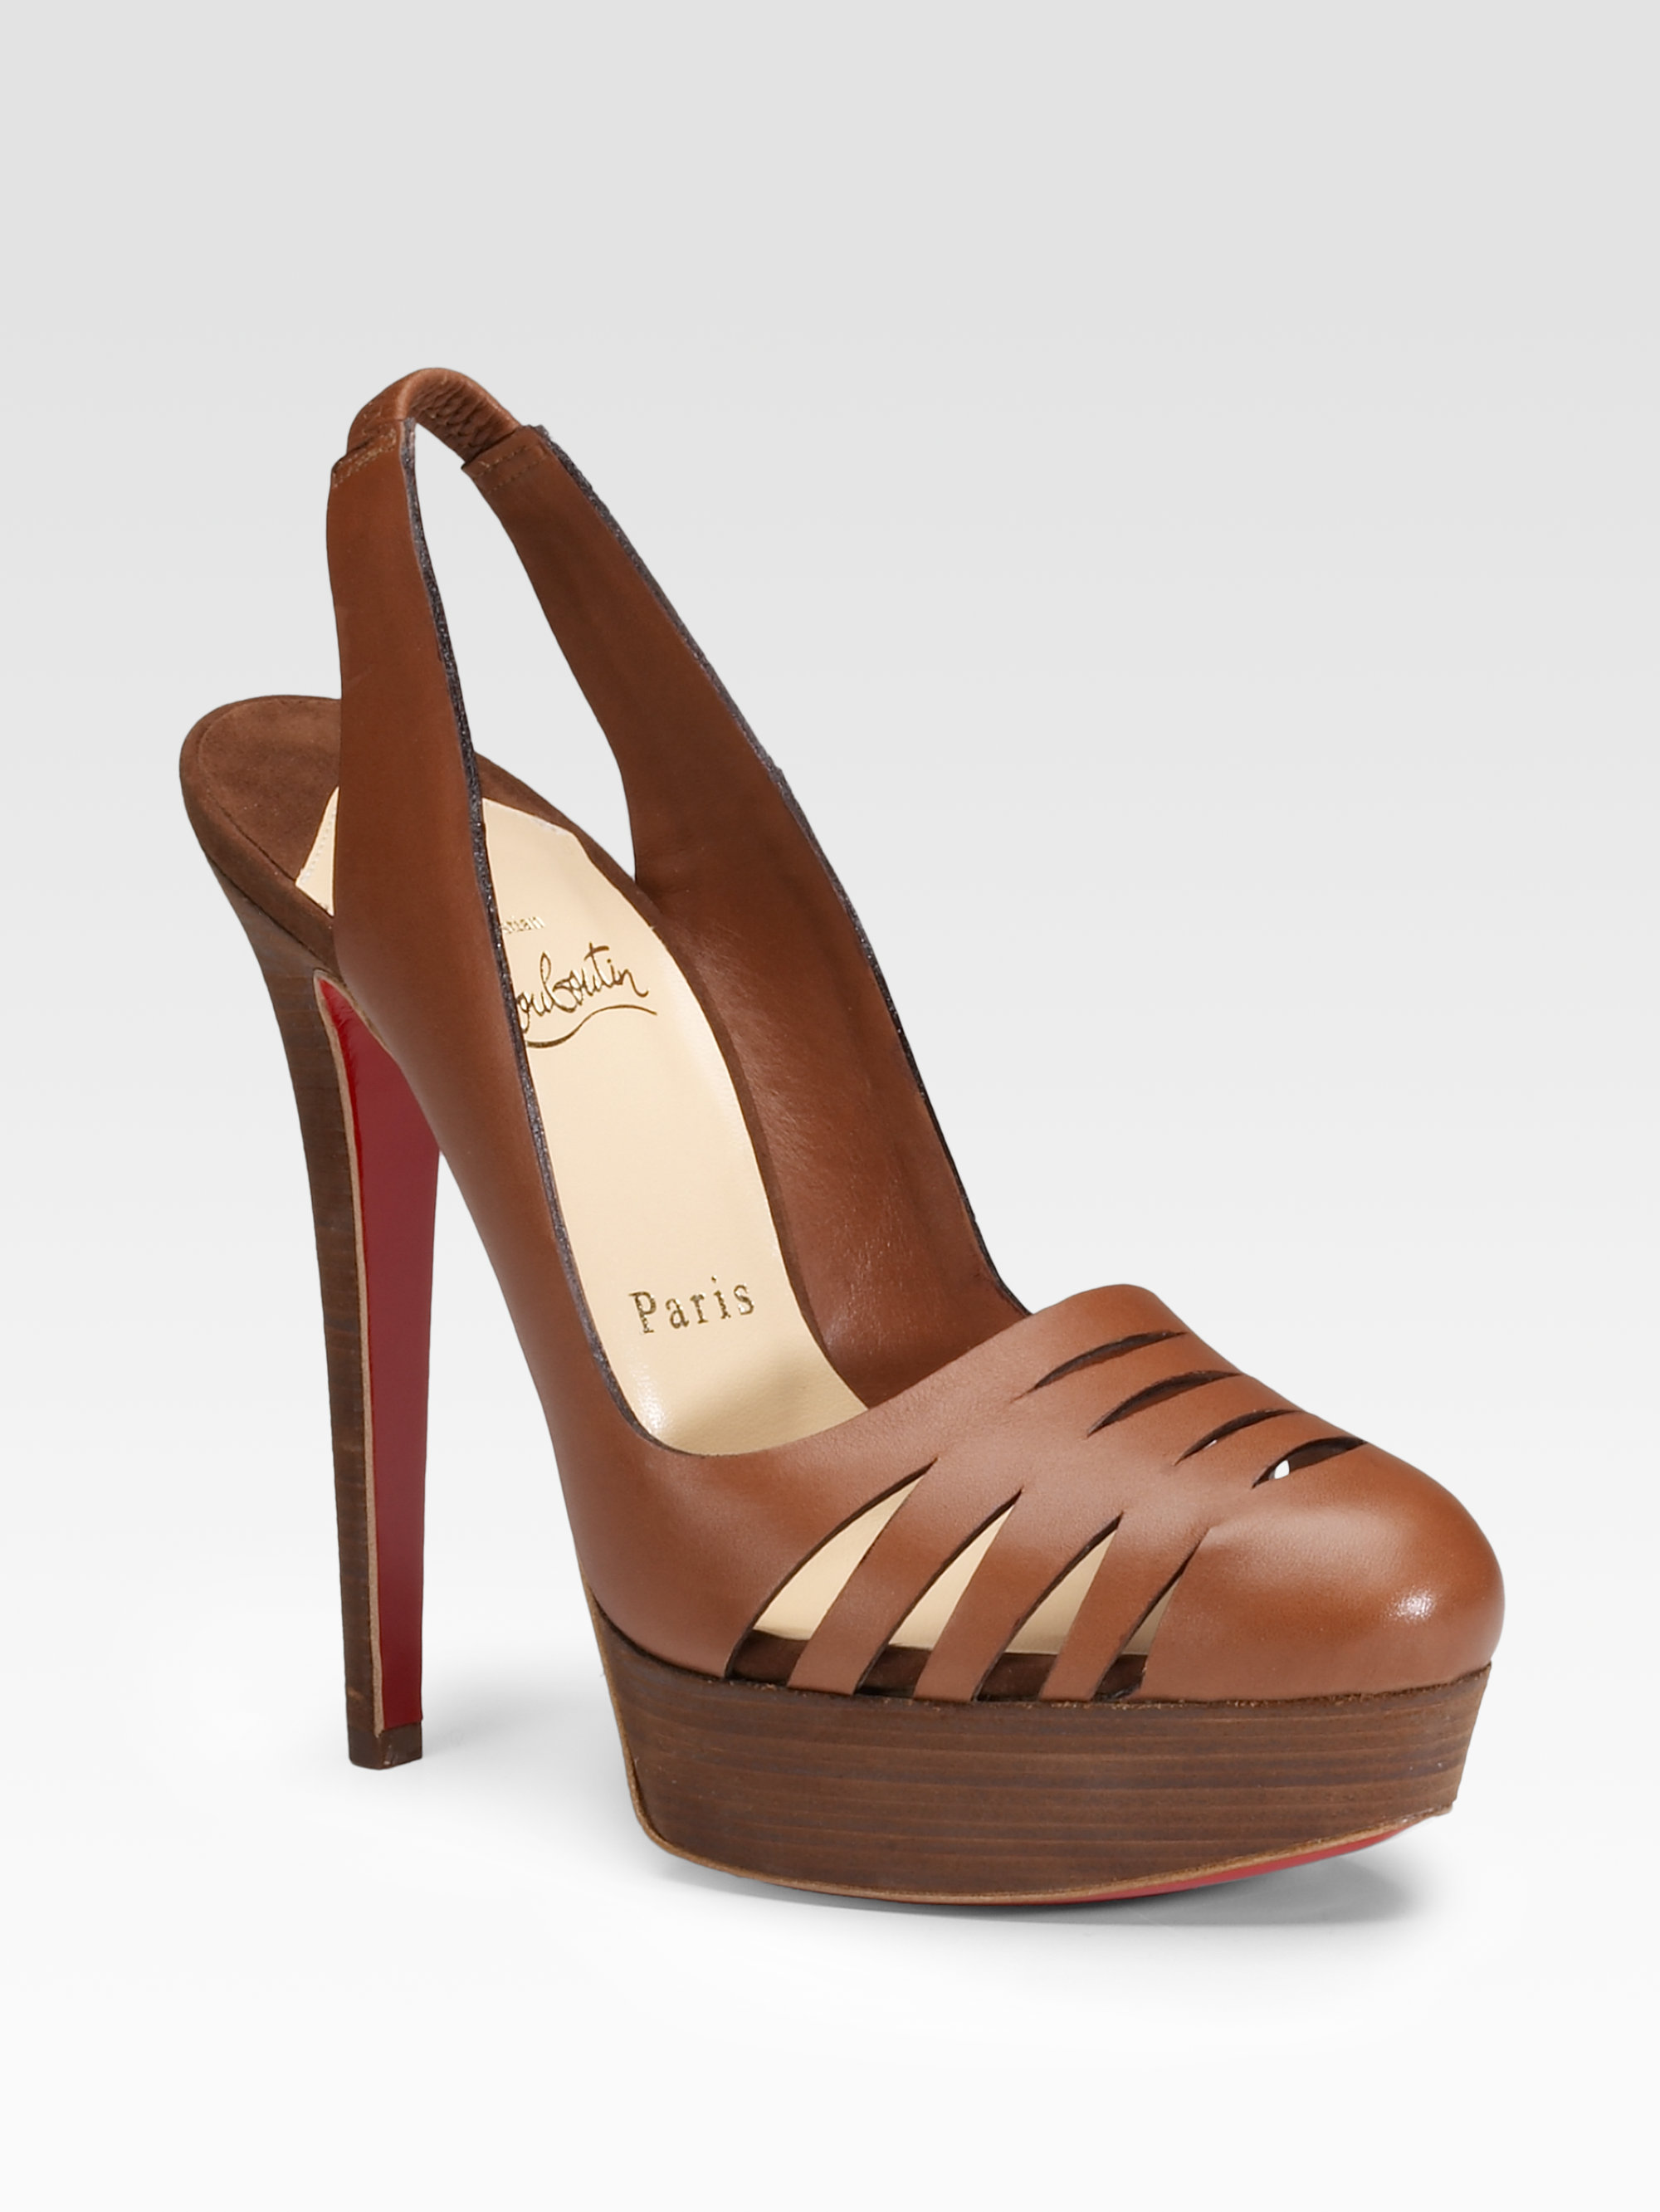 Lyst - Christian Louboutin Lasercut Leather Slingbacks in Brown